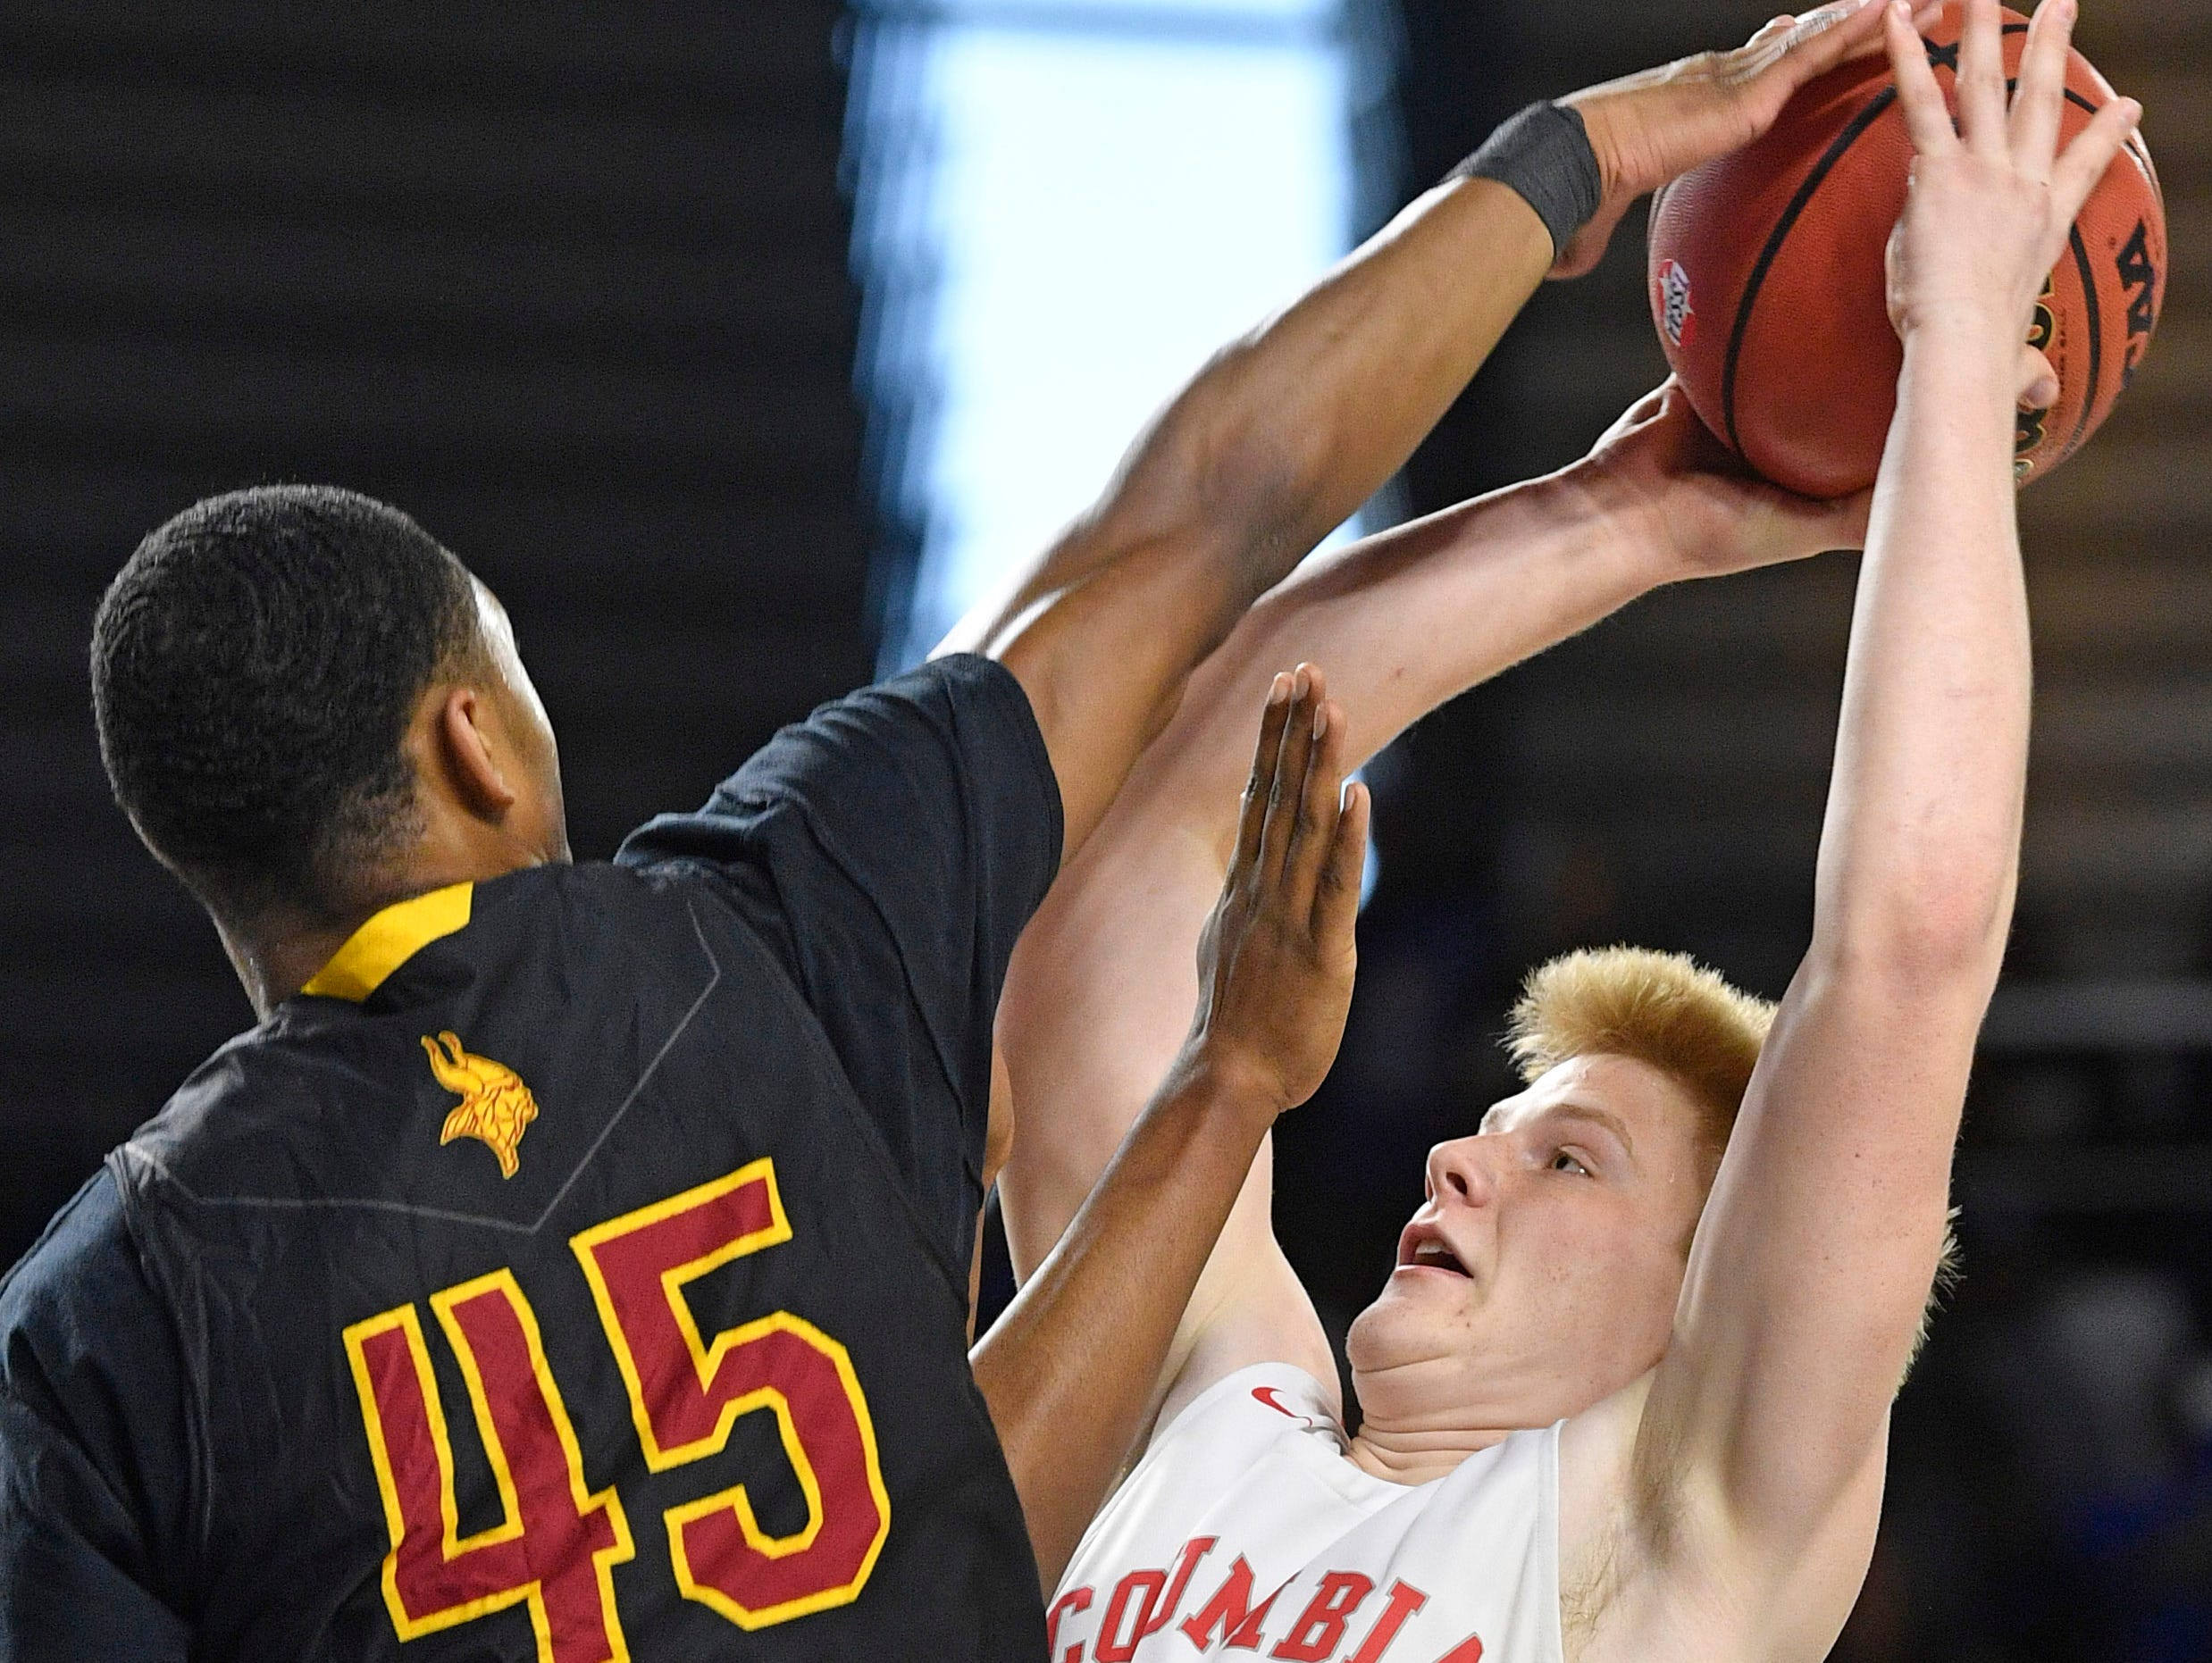 Humboldt's Anthony Jones (45) blocks a shot by Columbia Academy's Carson Cary (12) as Columbia Academy plays Humboldt for the TSSAA Class A Championship  Saturday, March 16, 2019, in Murfreesboro, Tenn.